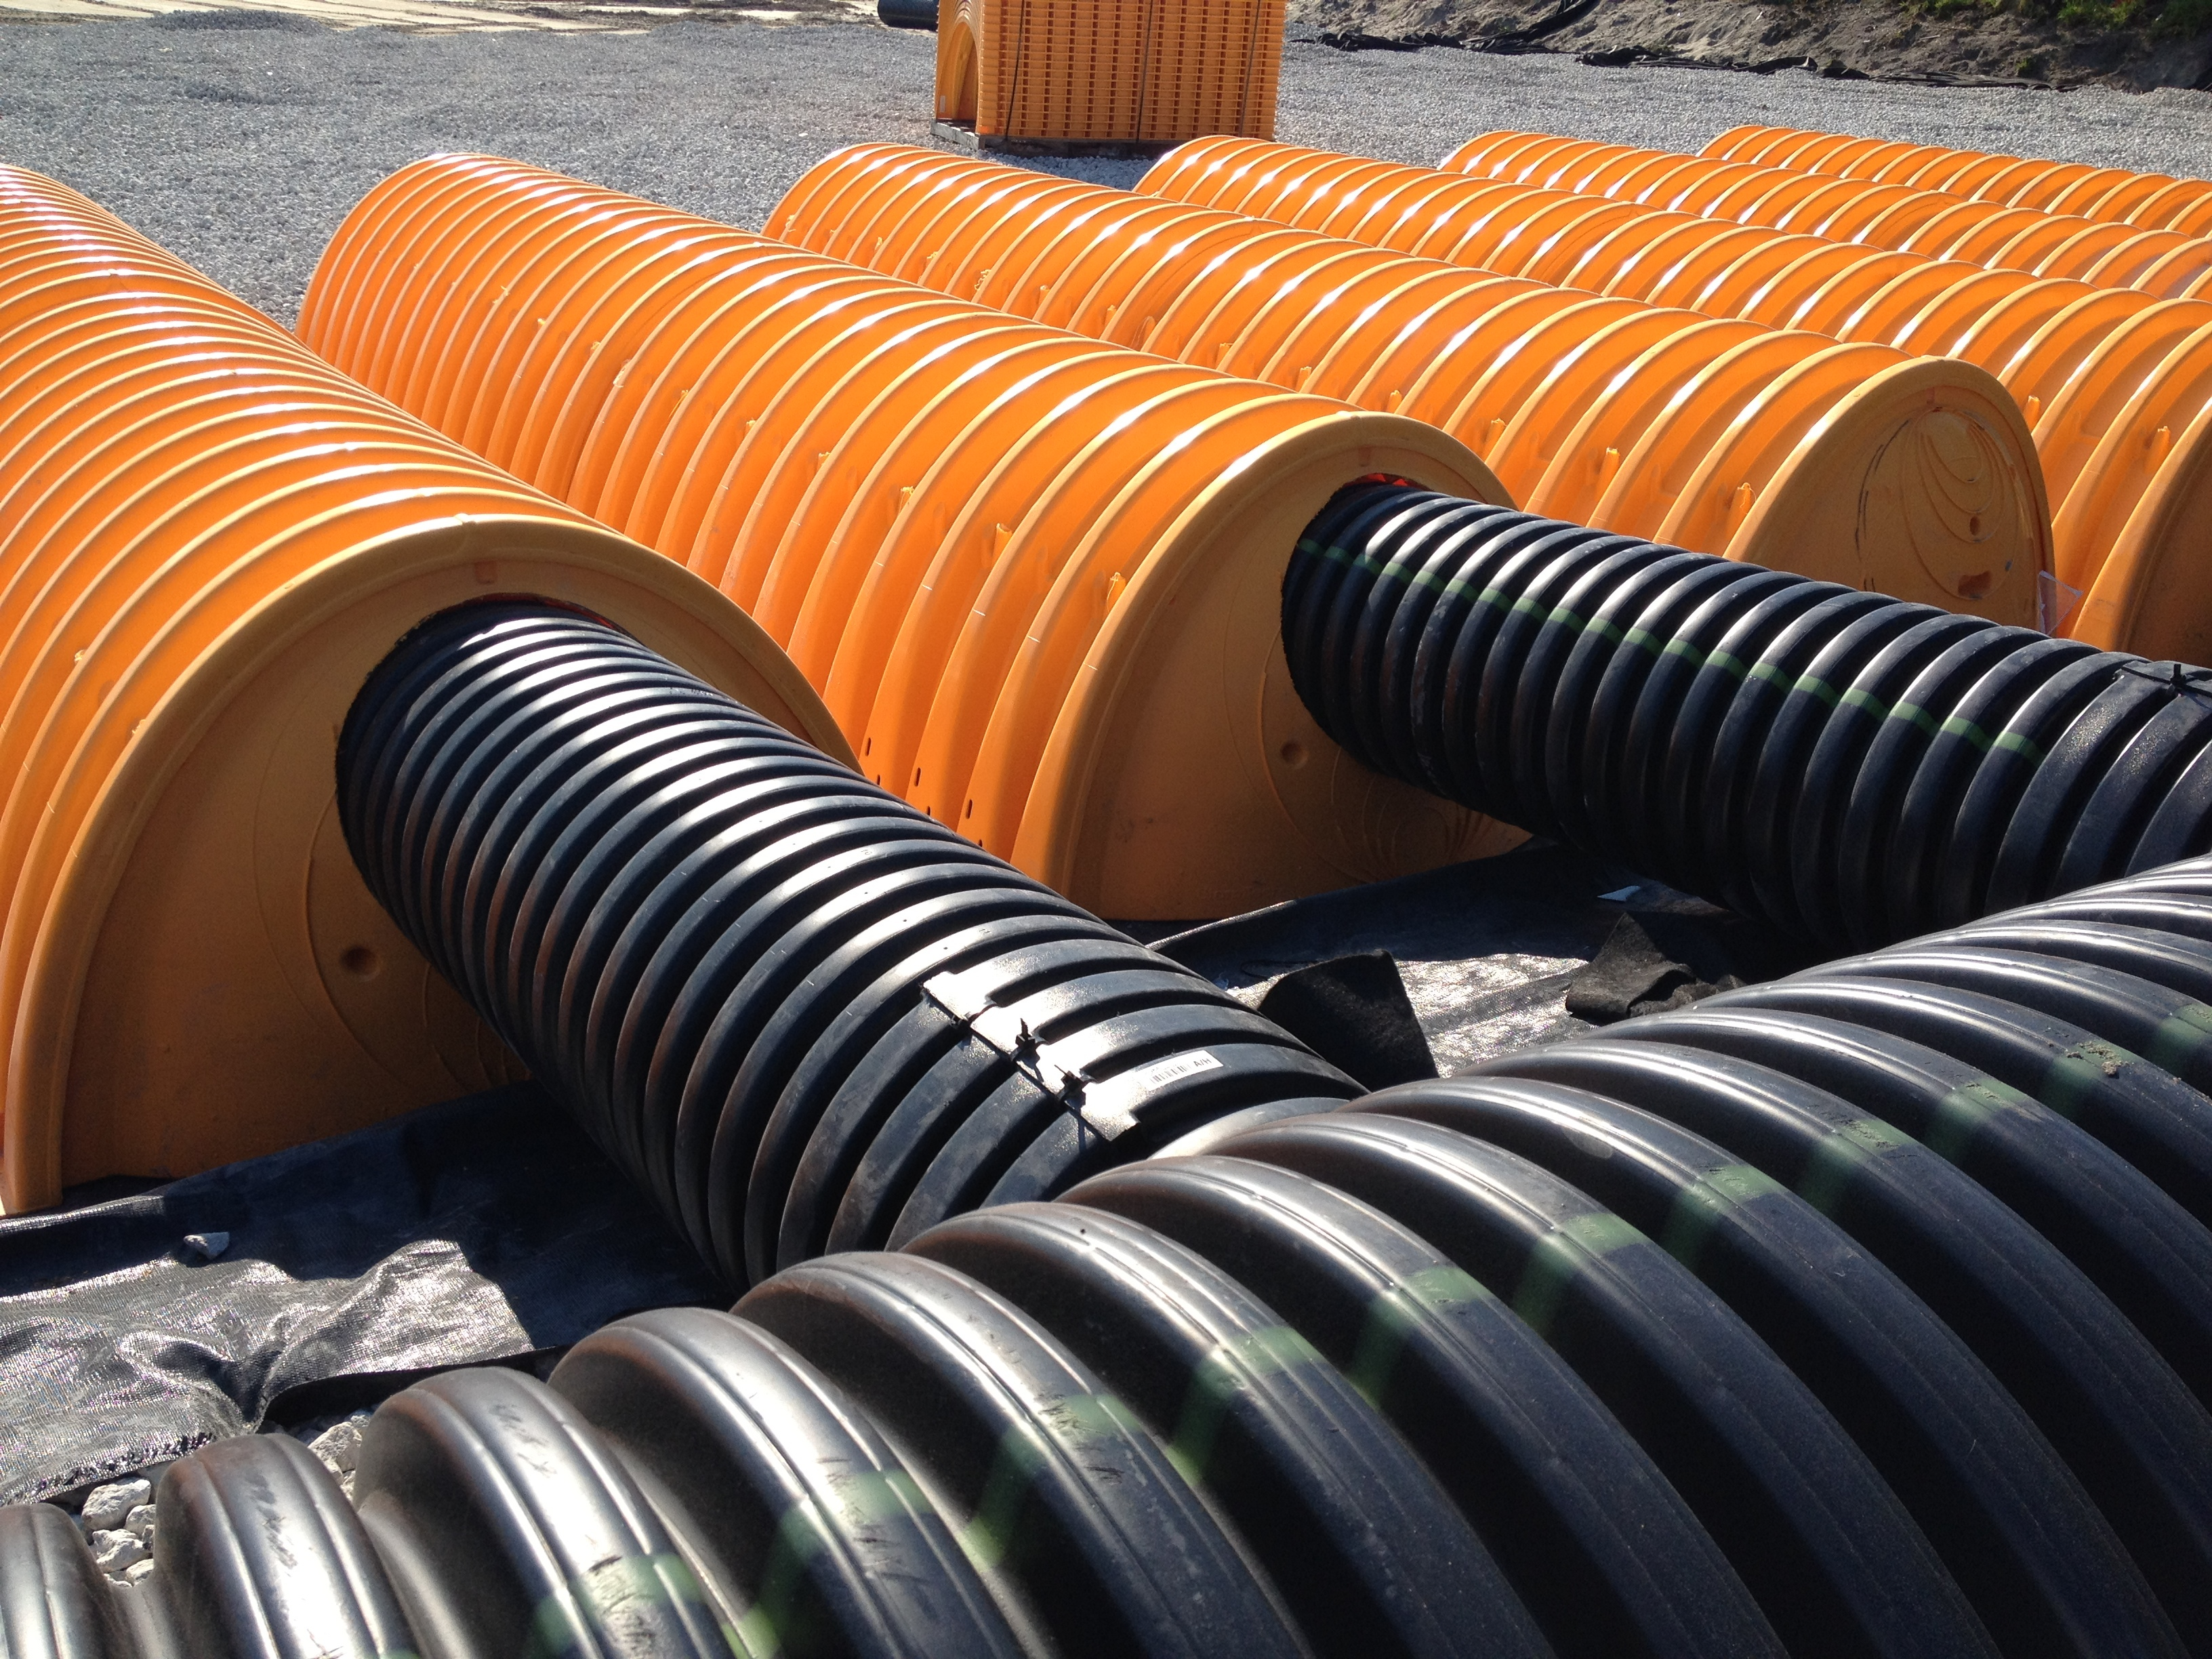 Advanced Drainage Systems, Inc. Opens Distribution Center in Florida ...